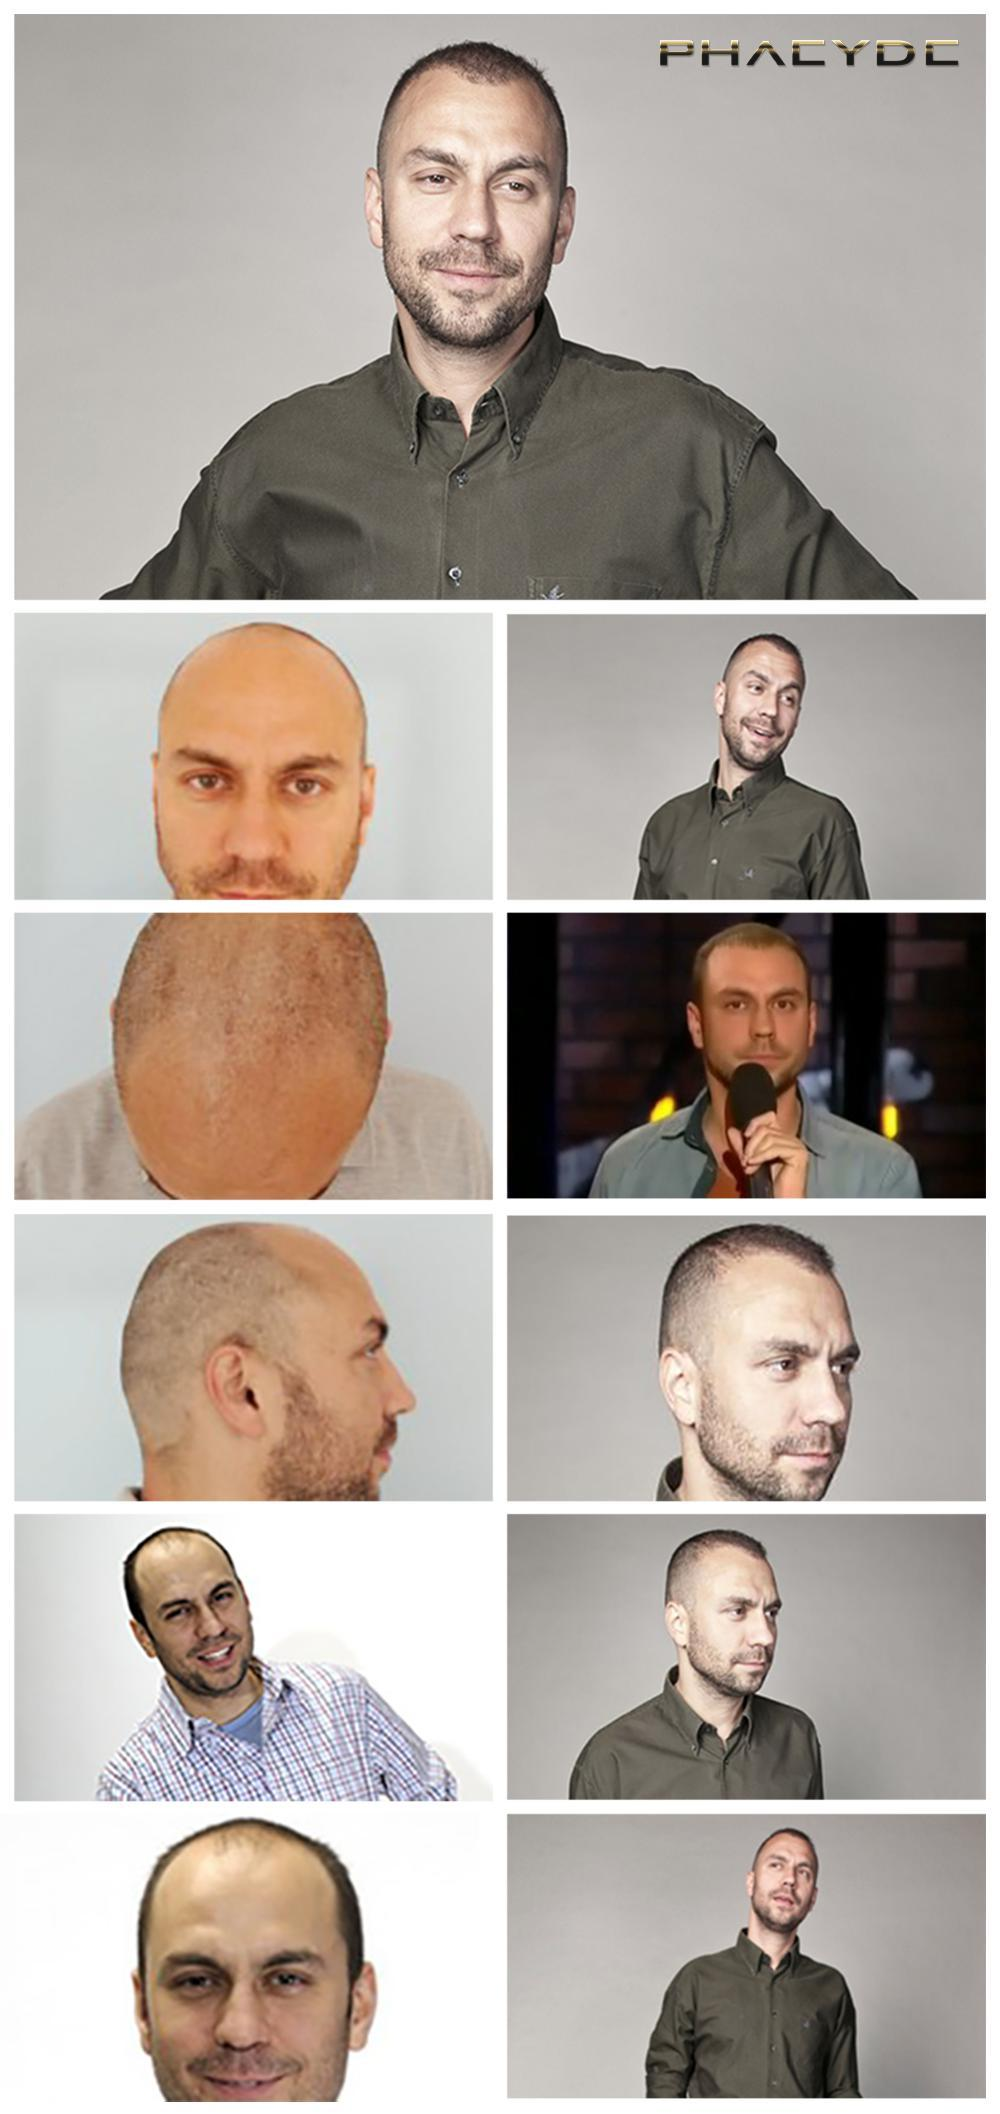 Hair transplant fue results before after photos attila csenki - PHAEYDE Clinic